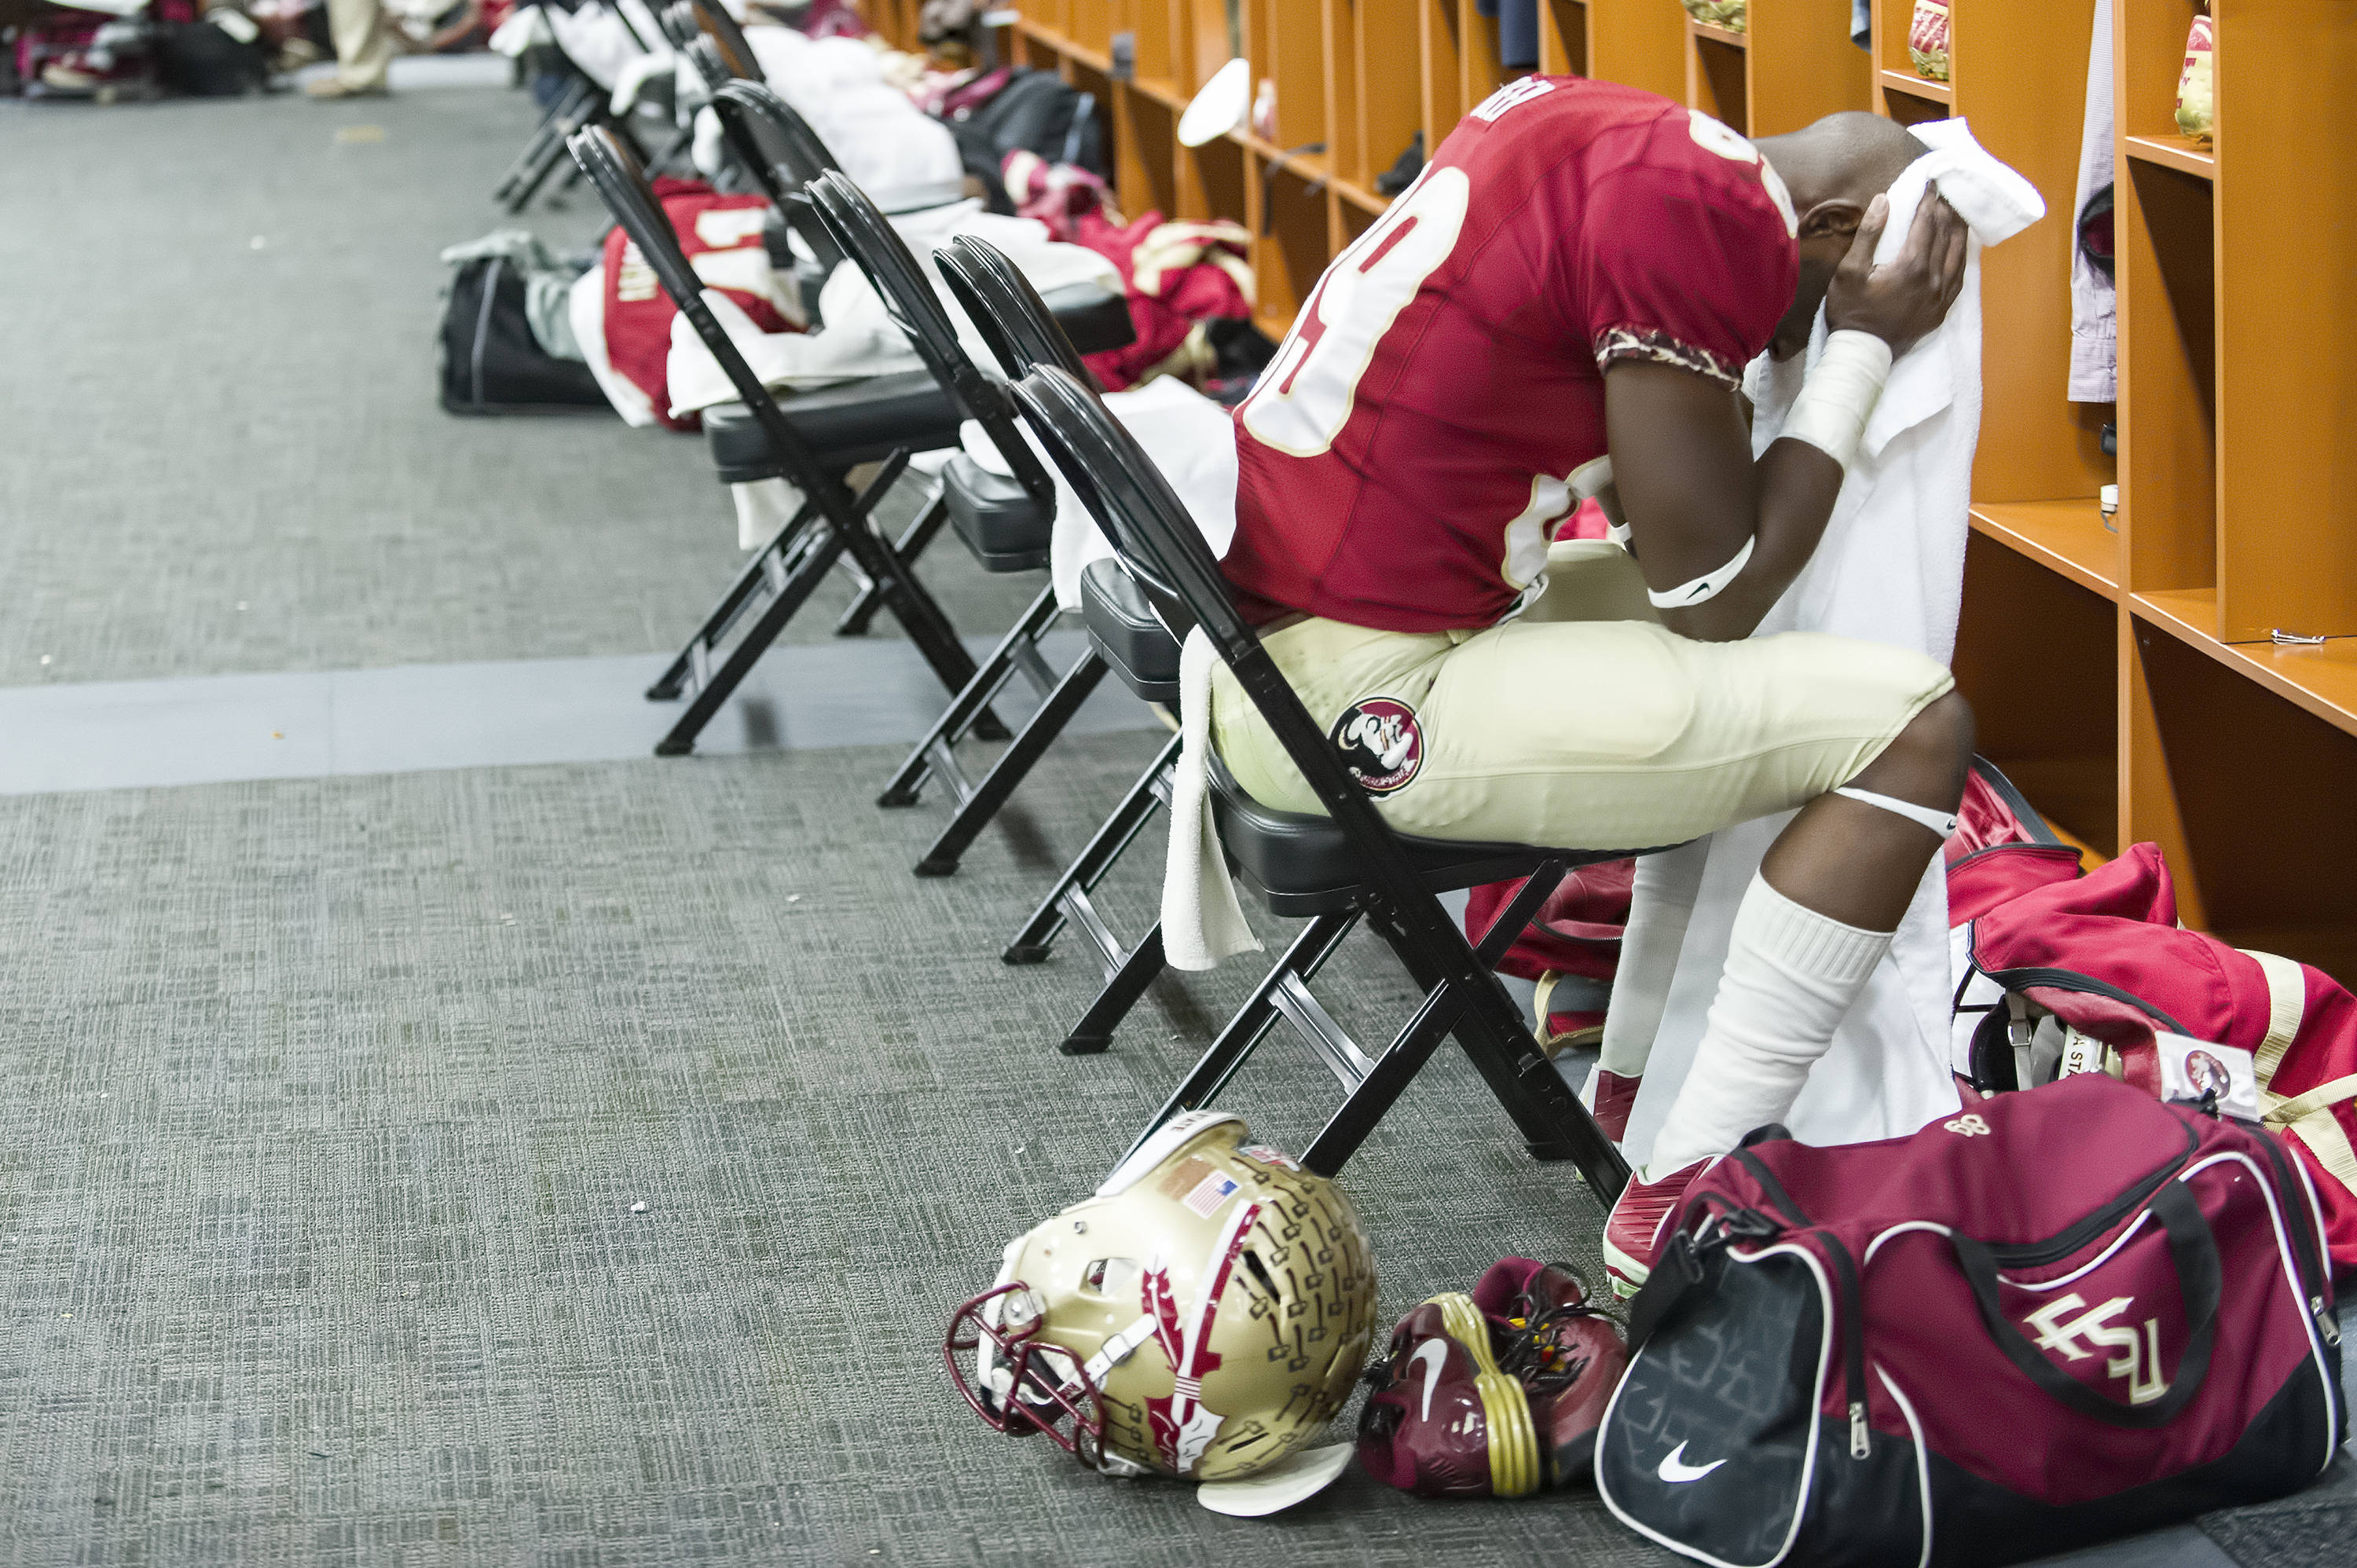 Christian Green (89) is overcome with emotion in the locker room after the victory